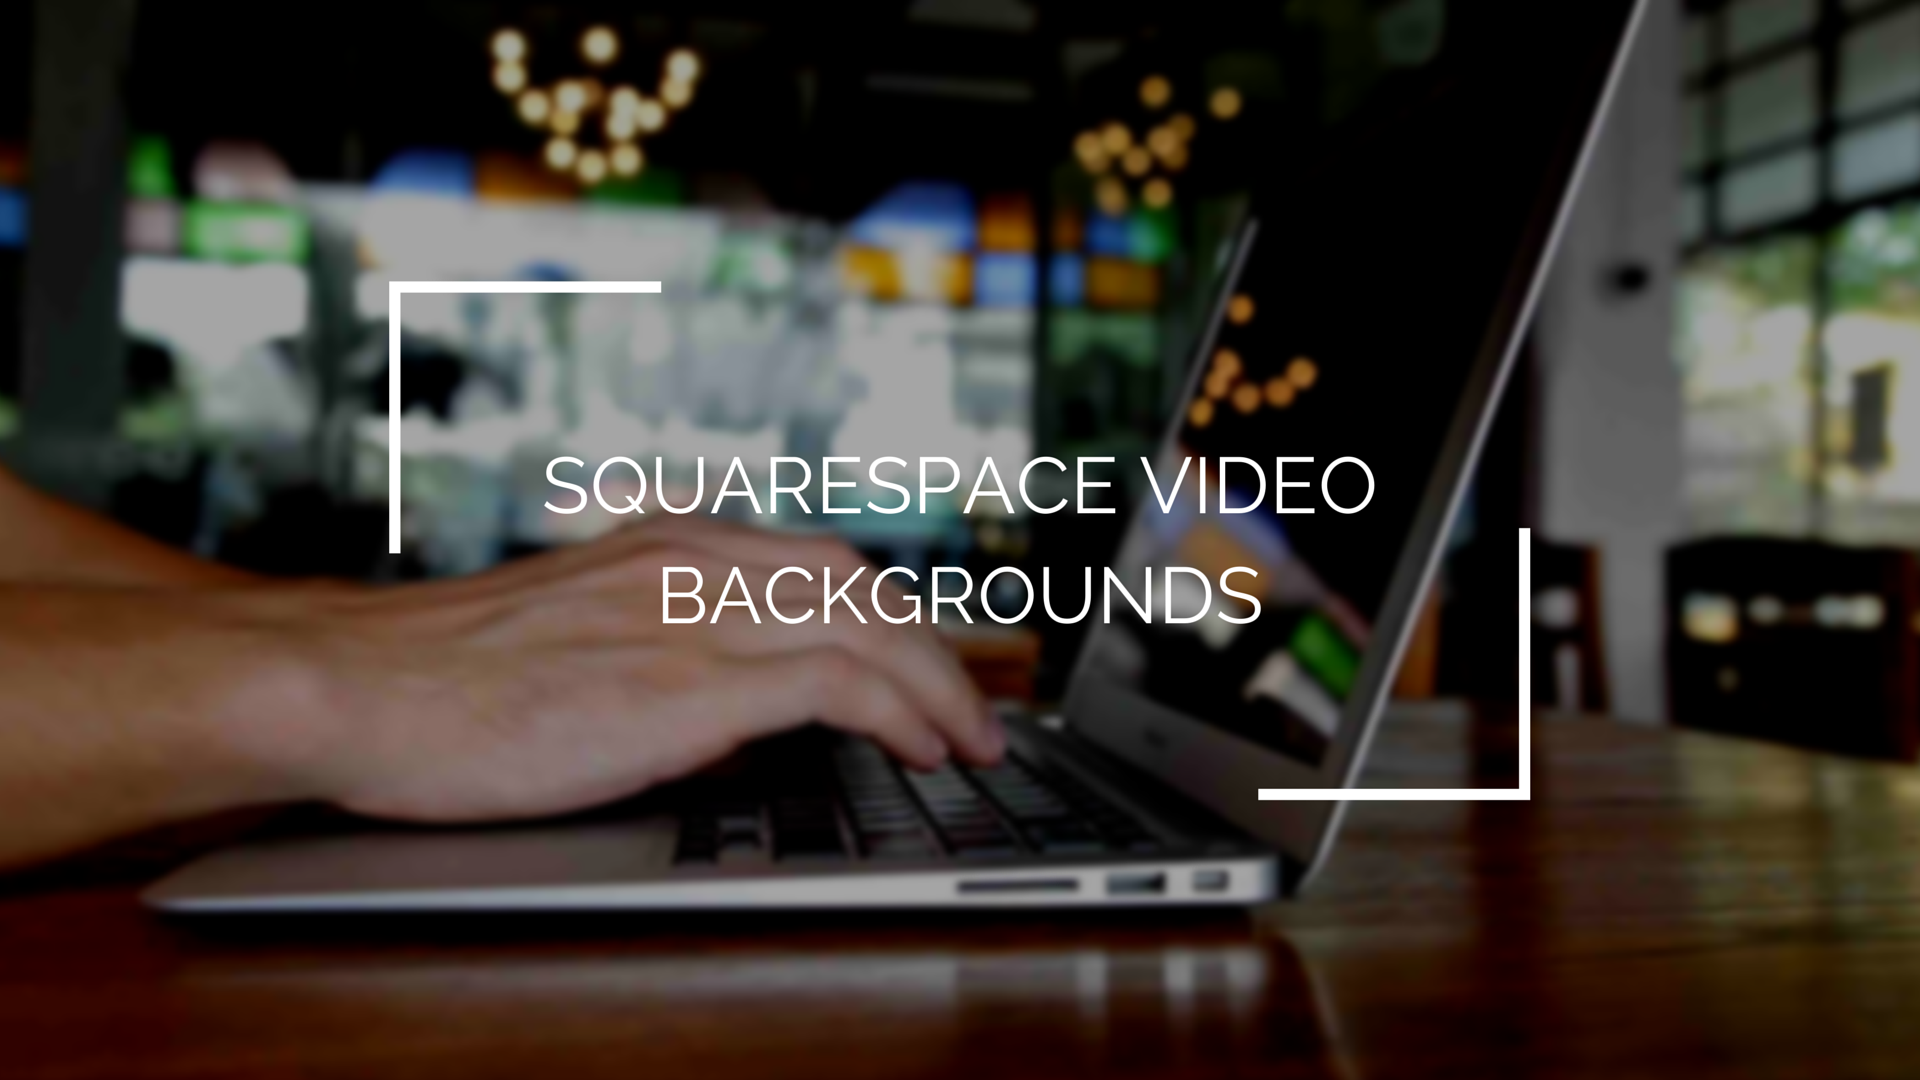 Background image squarespace - Squarespace Video Background